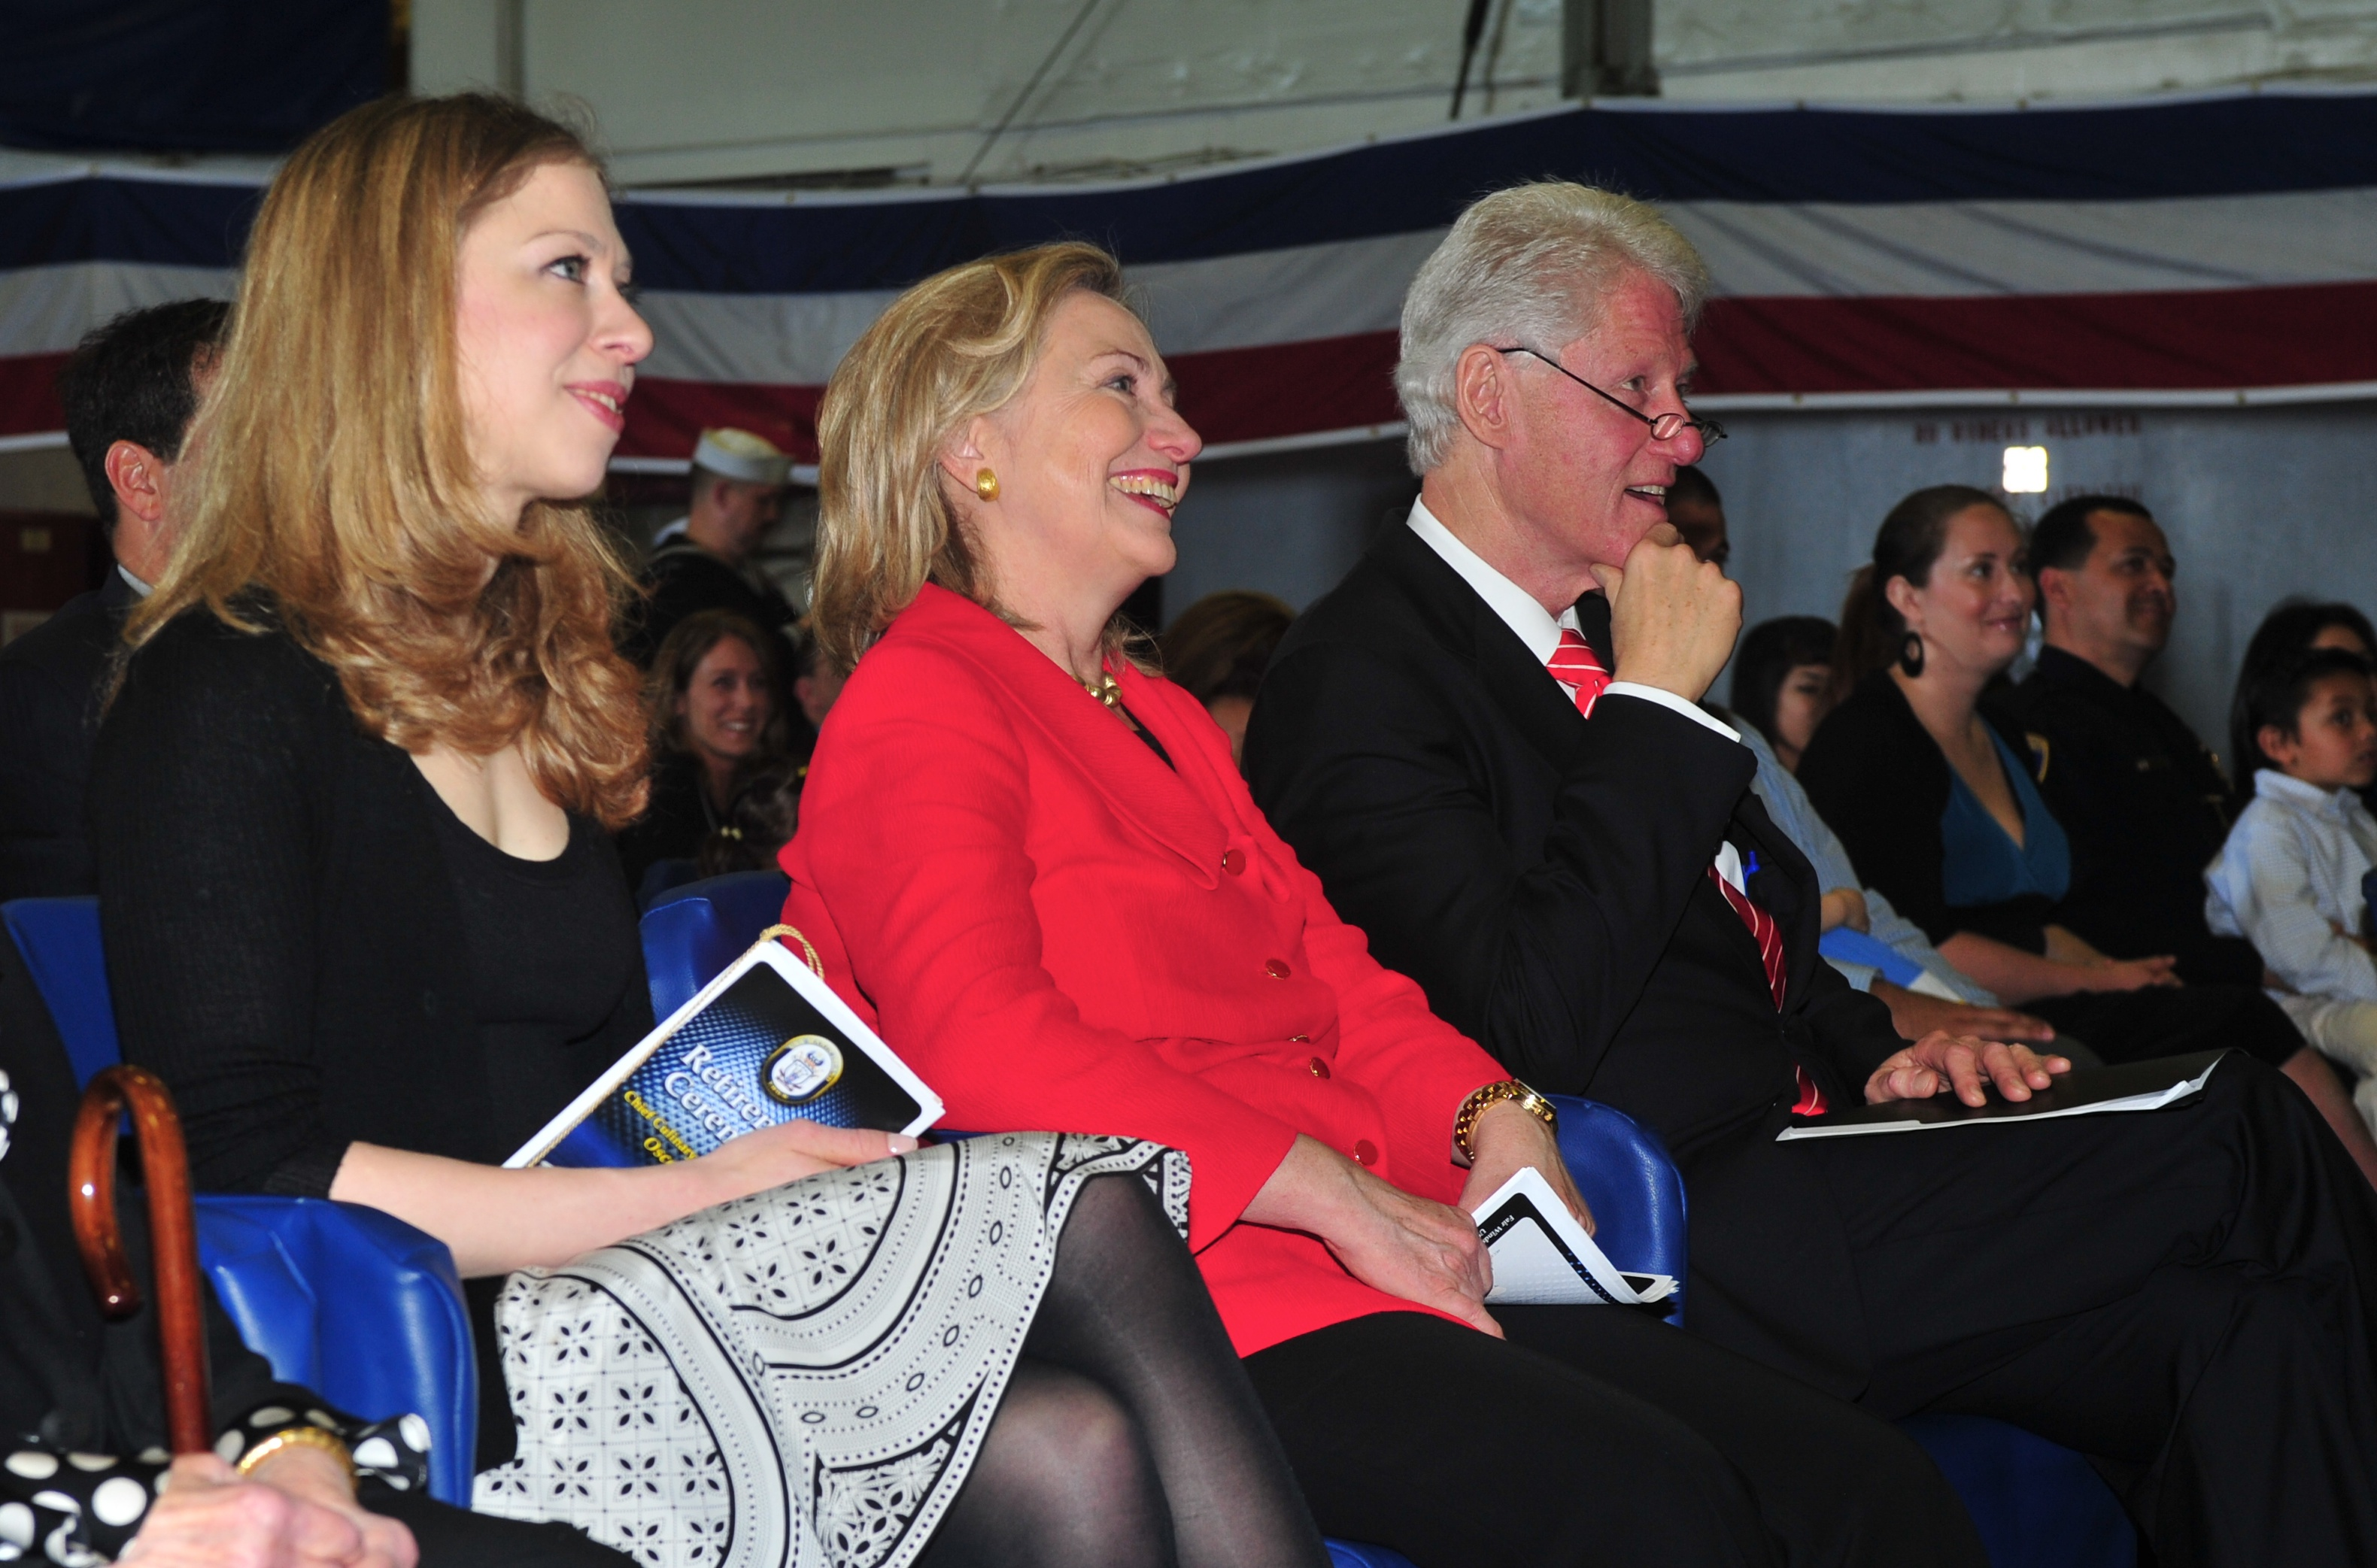 110401-N-KD852-385 SAN DIEGO (April 1, 2011) Chelsea Clinton, left, Secretary of State Hillary Rodham Clinton and former U.S. President William Jefferson Clinton attend the retirement ceremony of Chief Culinary Specialist Oscar Flores aboard the multi-purpose amphibious assault ship USS Makin Island (LHD 8). Flores works for the Clinton family and previously served President Clinton during an assignment at the White House. (U.S. Navy photo by Chief Mass Communication Specialist John Lill/Released)